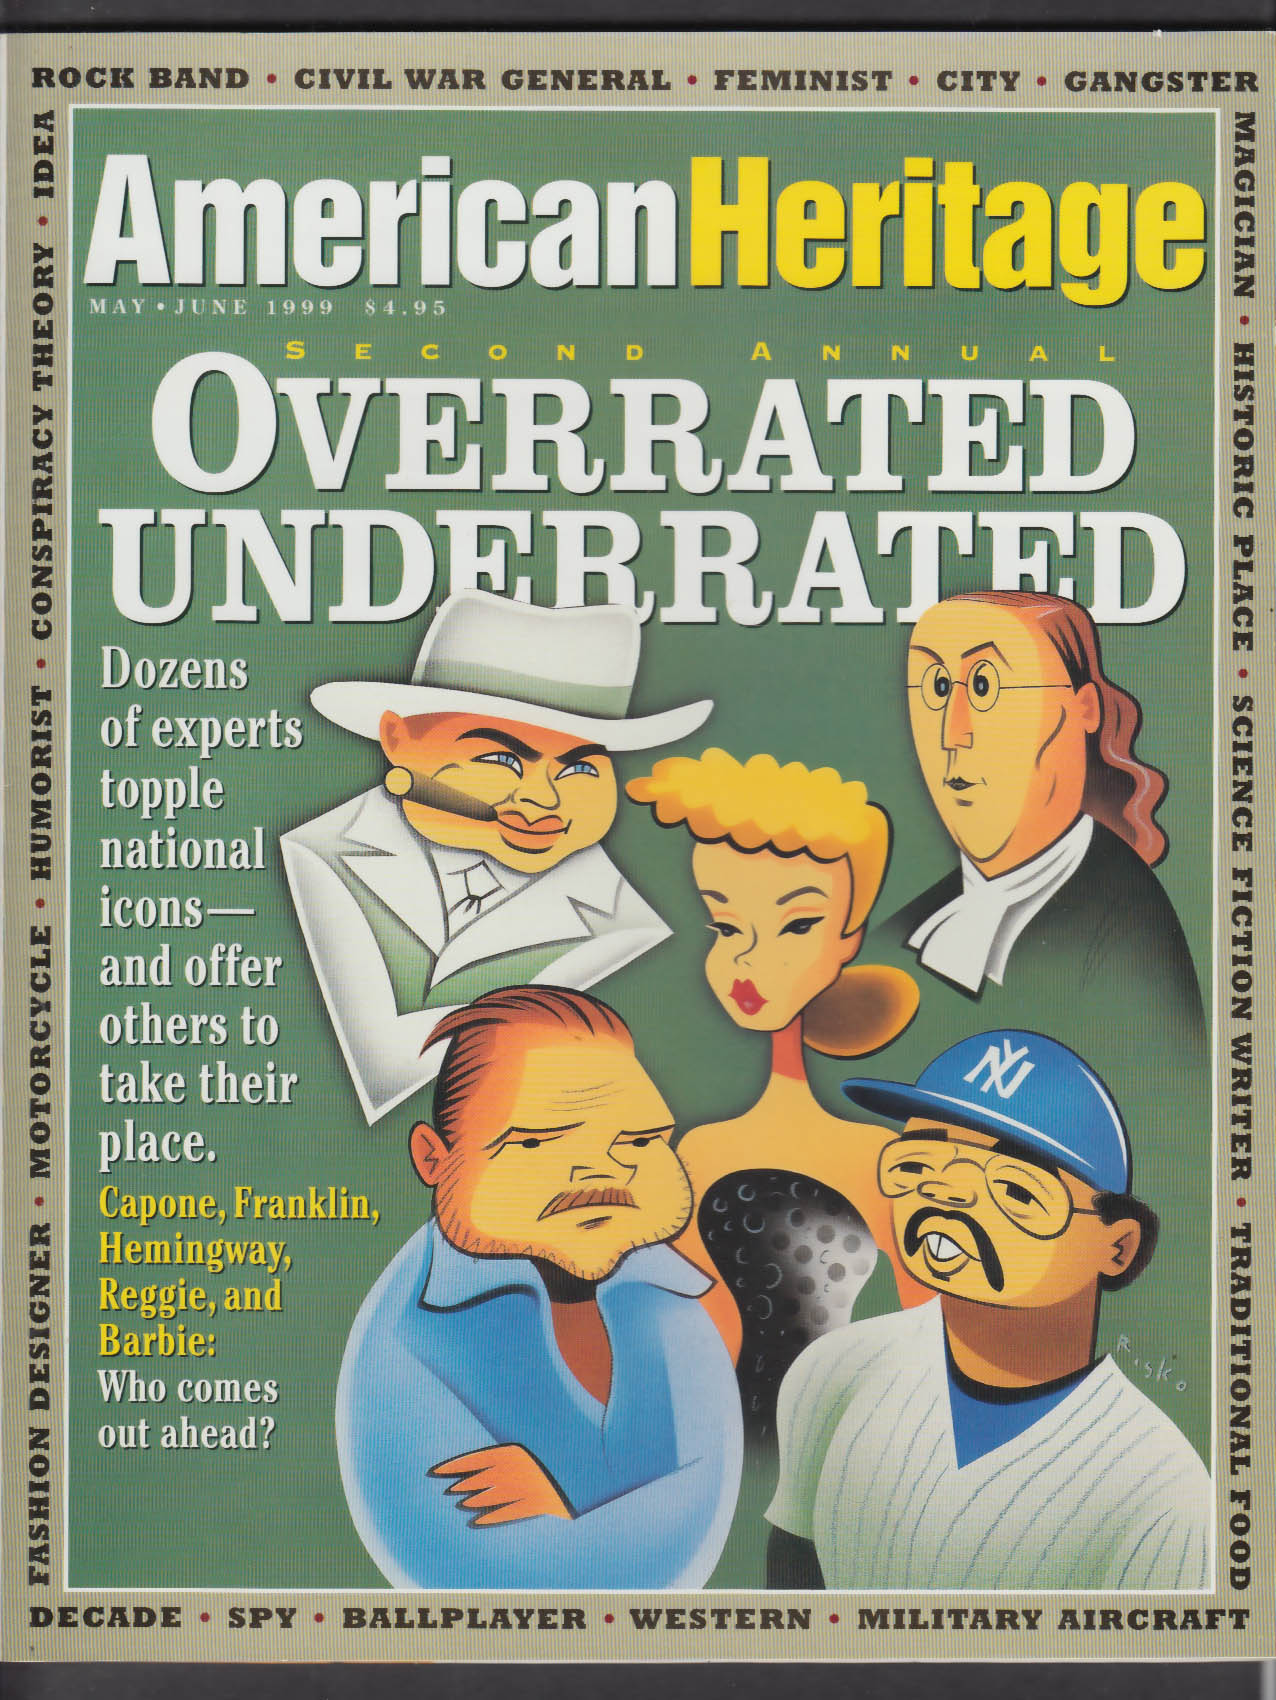 AMERICAN HERITAGE Overrated/Underrated Thomas Berger + 5-6 1999